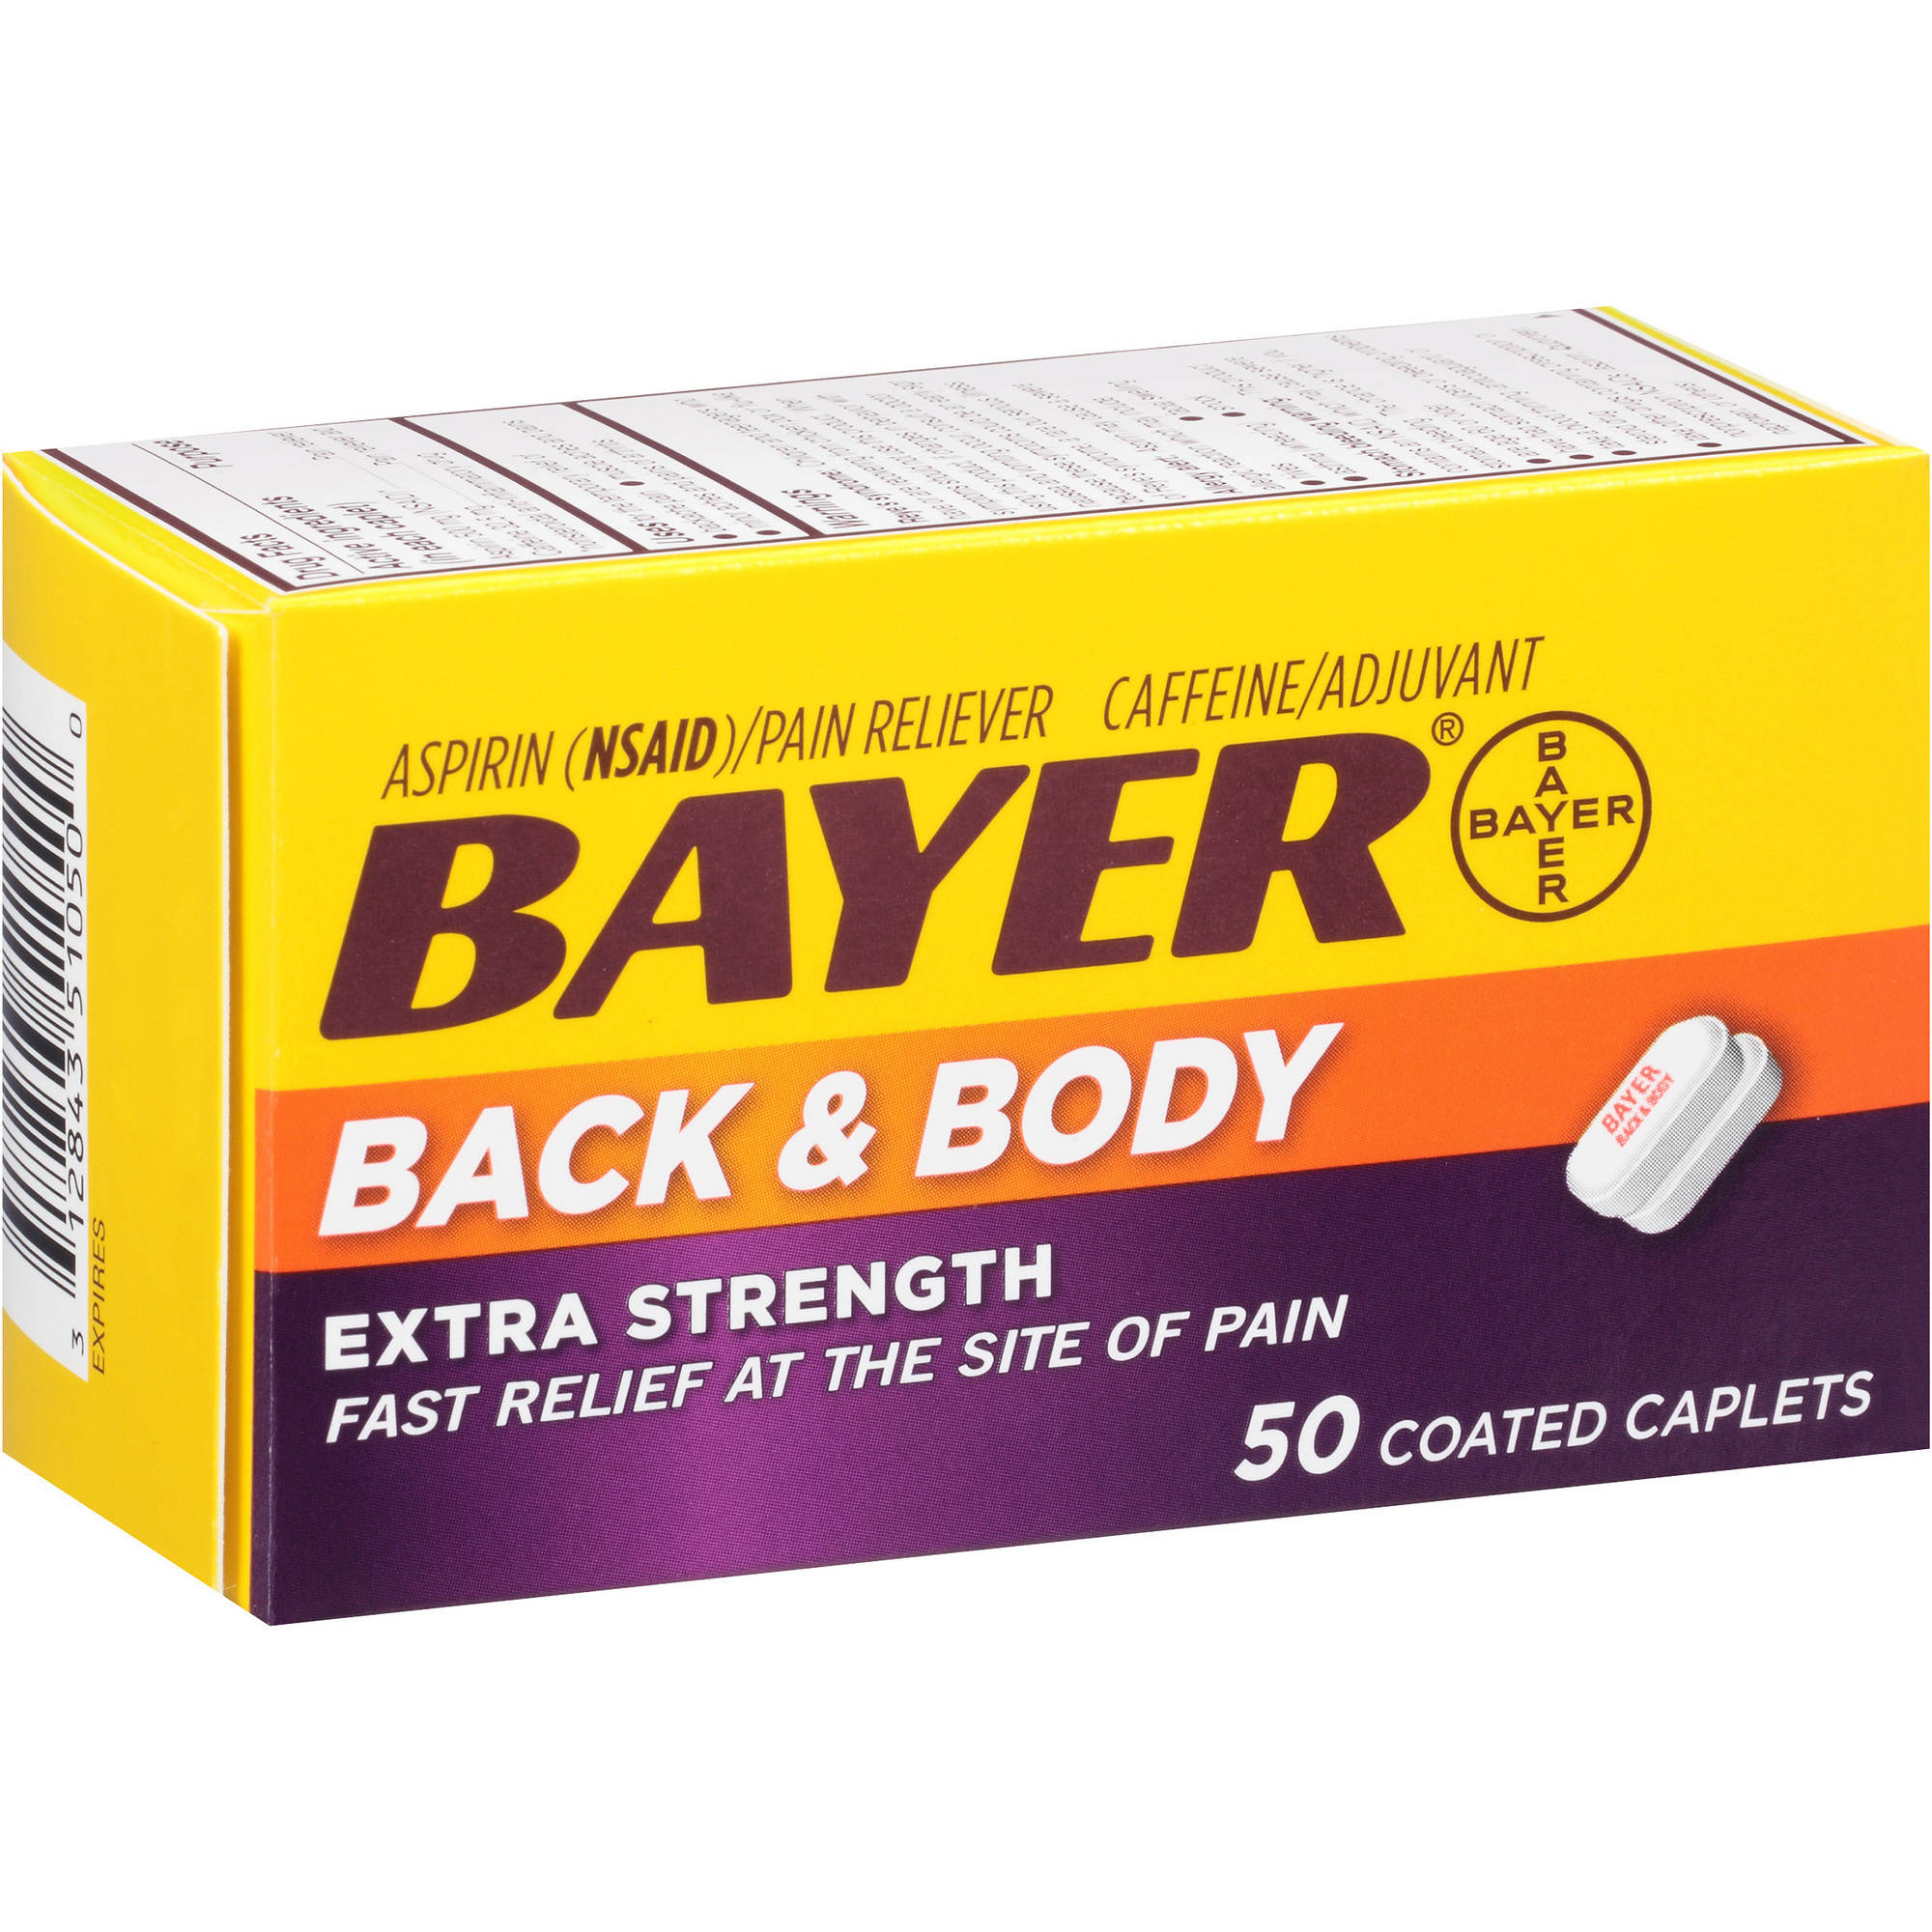 Bayer Aspirin Pain Reliever, Extra Strength Back & Body Pain, 50 CT (Pack of 6)